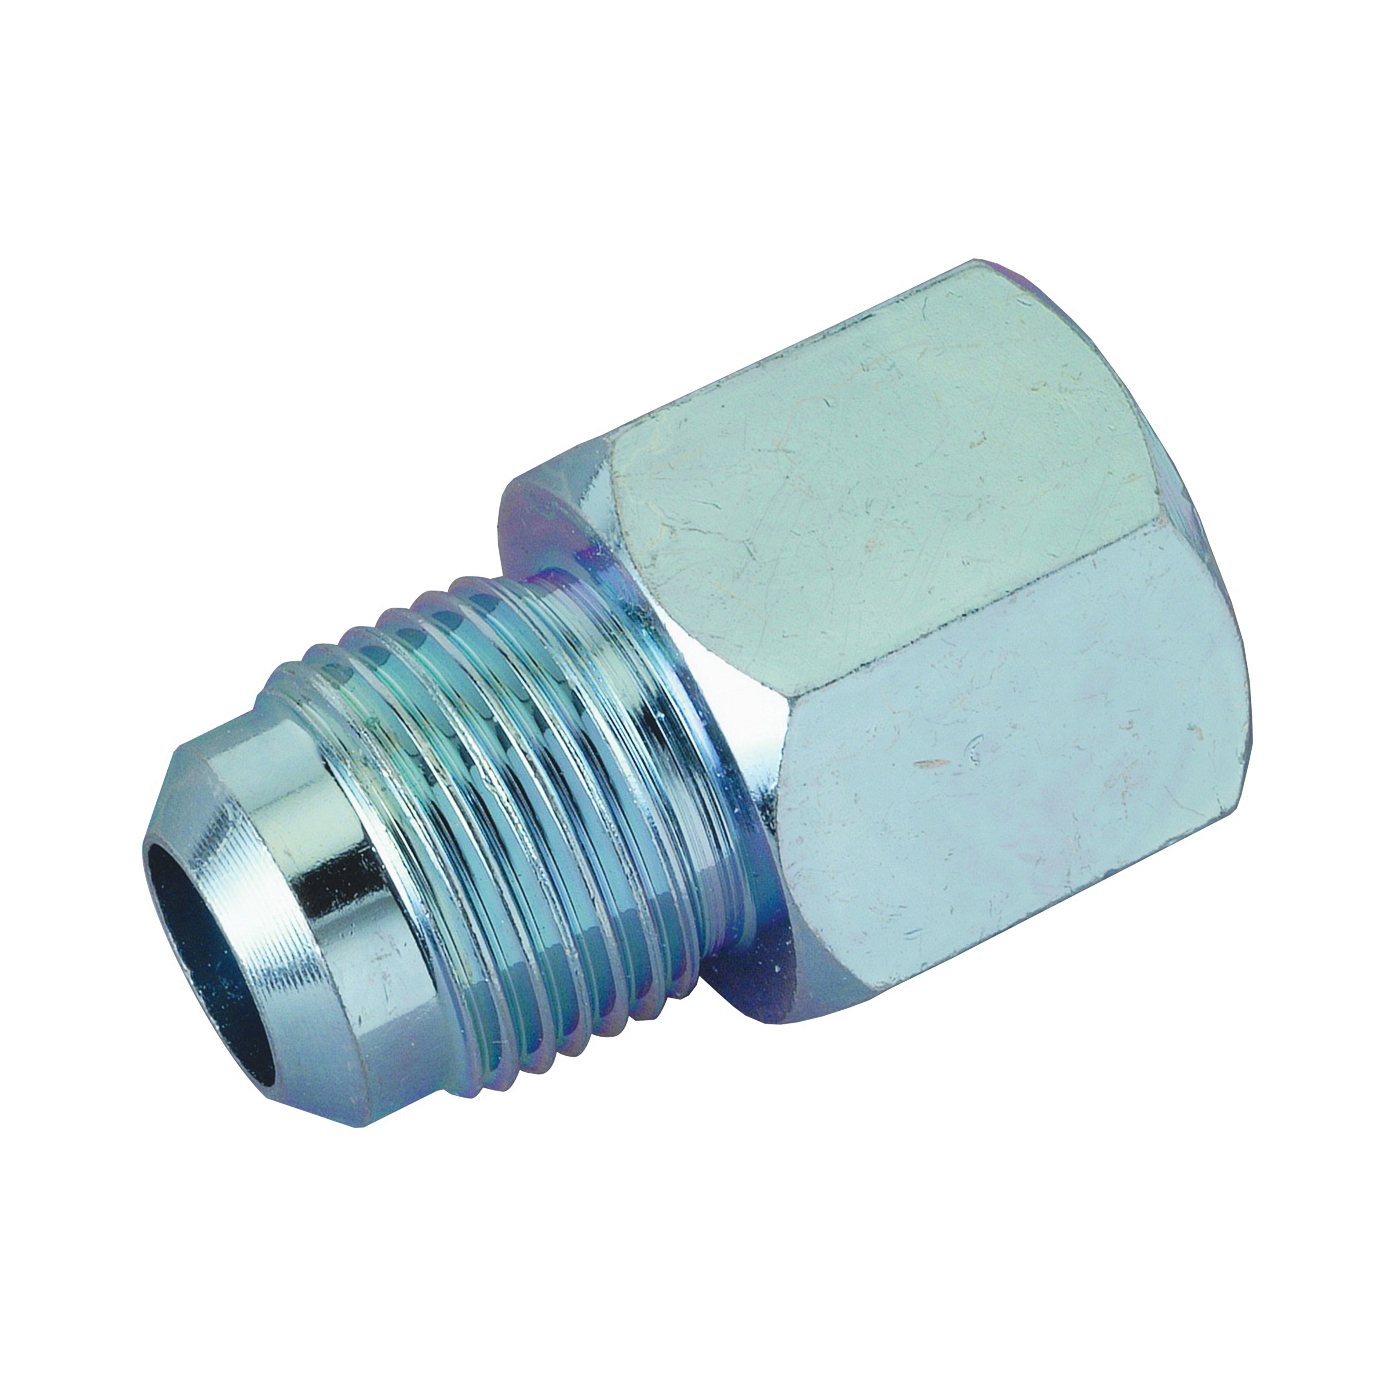 Picture of BrassCraft PSSC-62 Gas Supply Adapter, 5/8 x 1/2 in, Flare x FIP, Stainless Steel